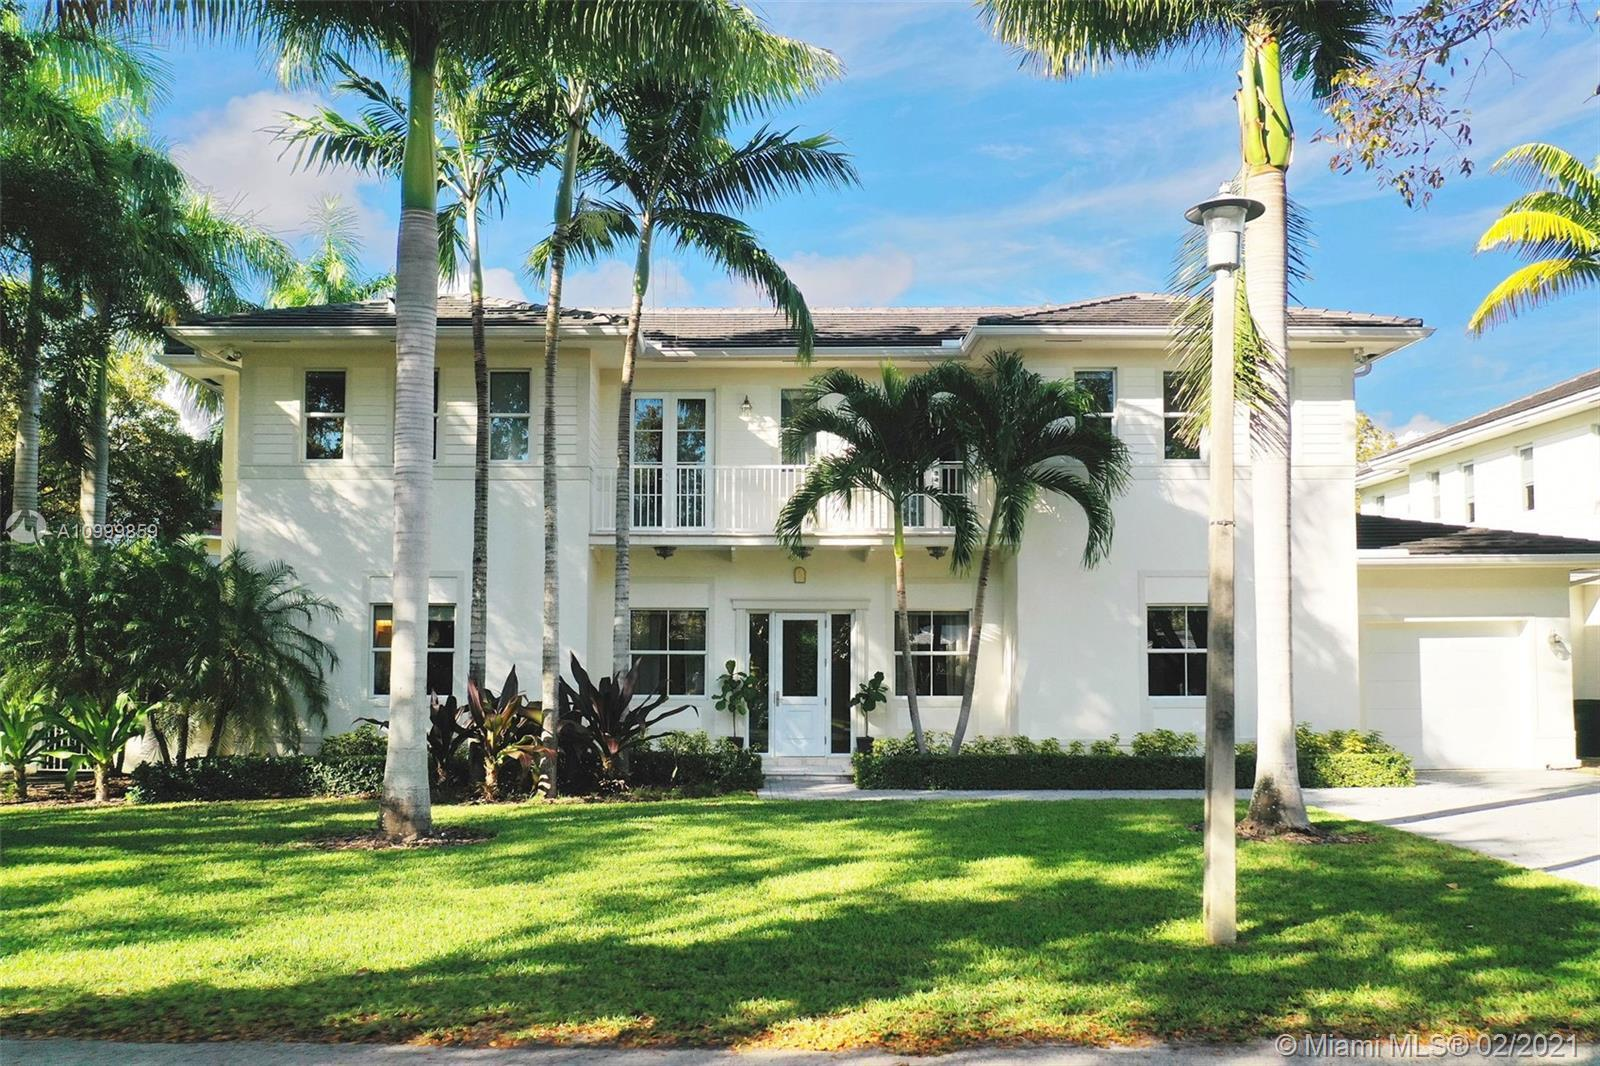 Introducing this newly built elegant, 2 story home located in highly sought after S. Coral Gables, i